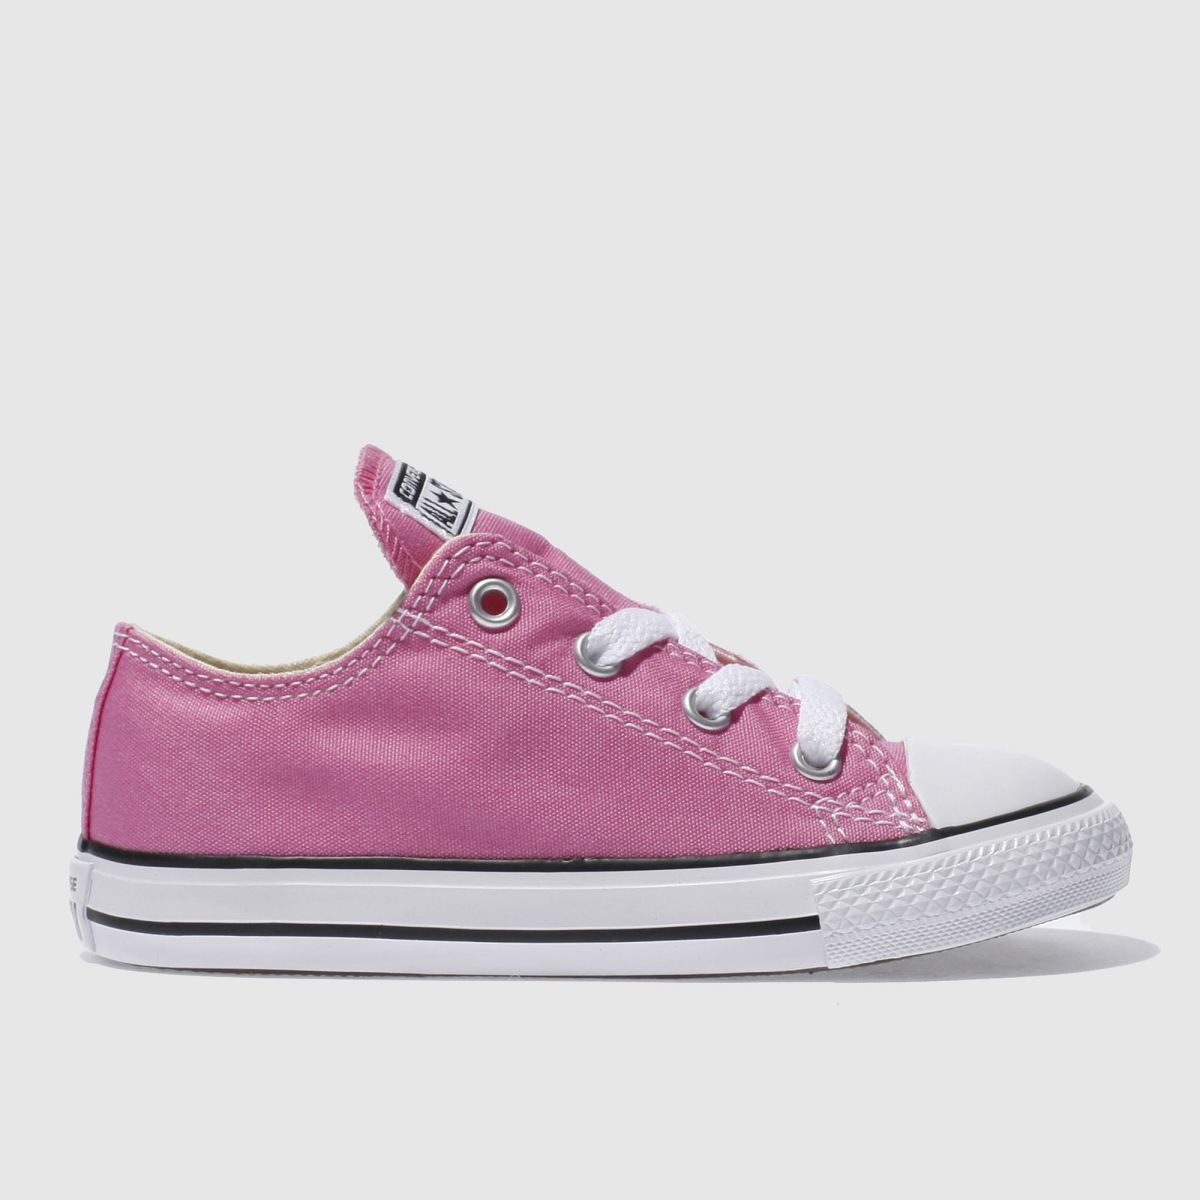 converse pink all star lo Girls Toddler Trainers